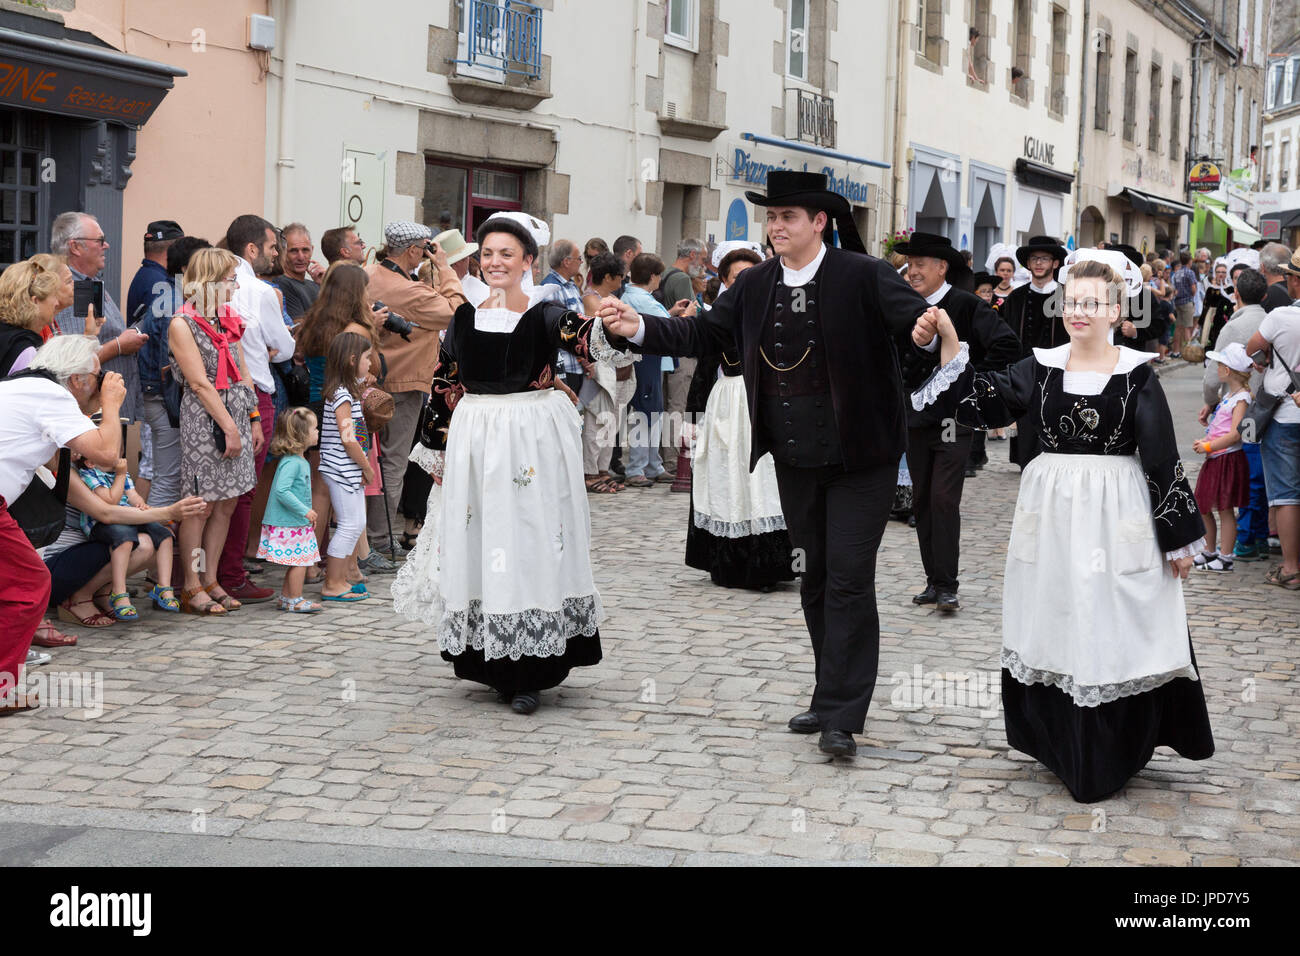 Brittany France - adults in traditional costume parading in the streets of Pont l'Abbe for the Fete des Brodeuses, Brittany France Europe - Stock Image